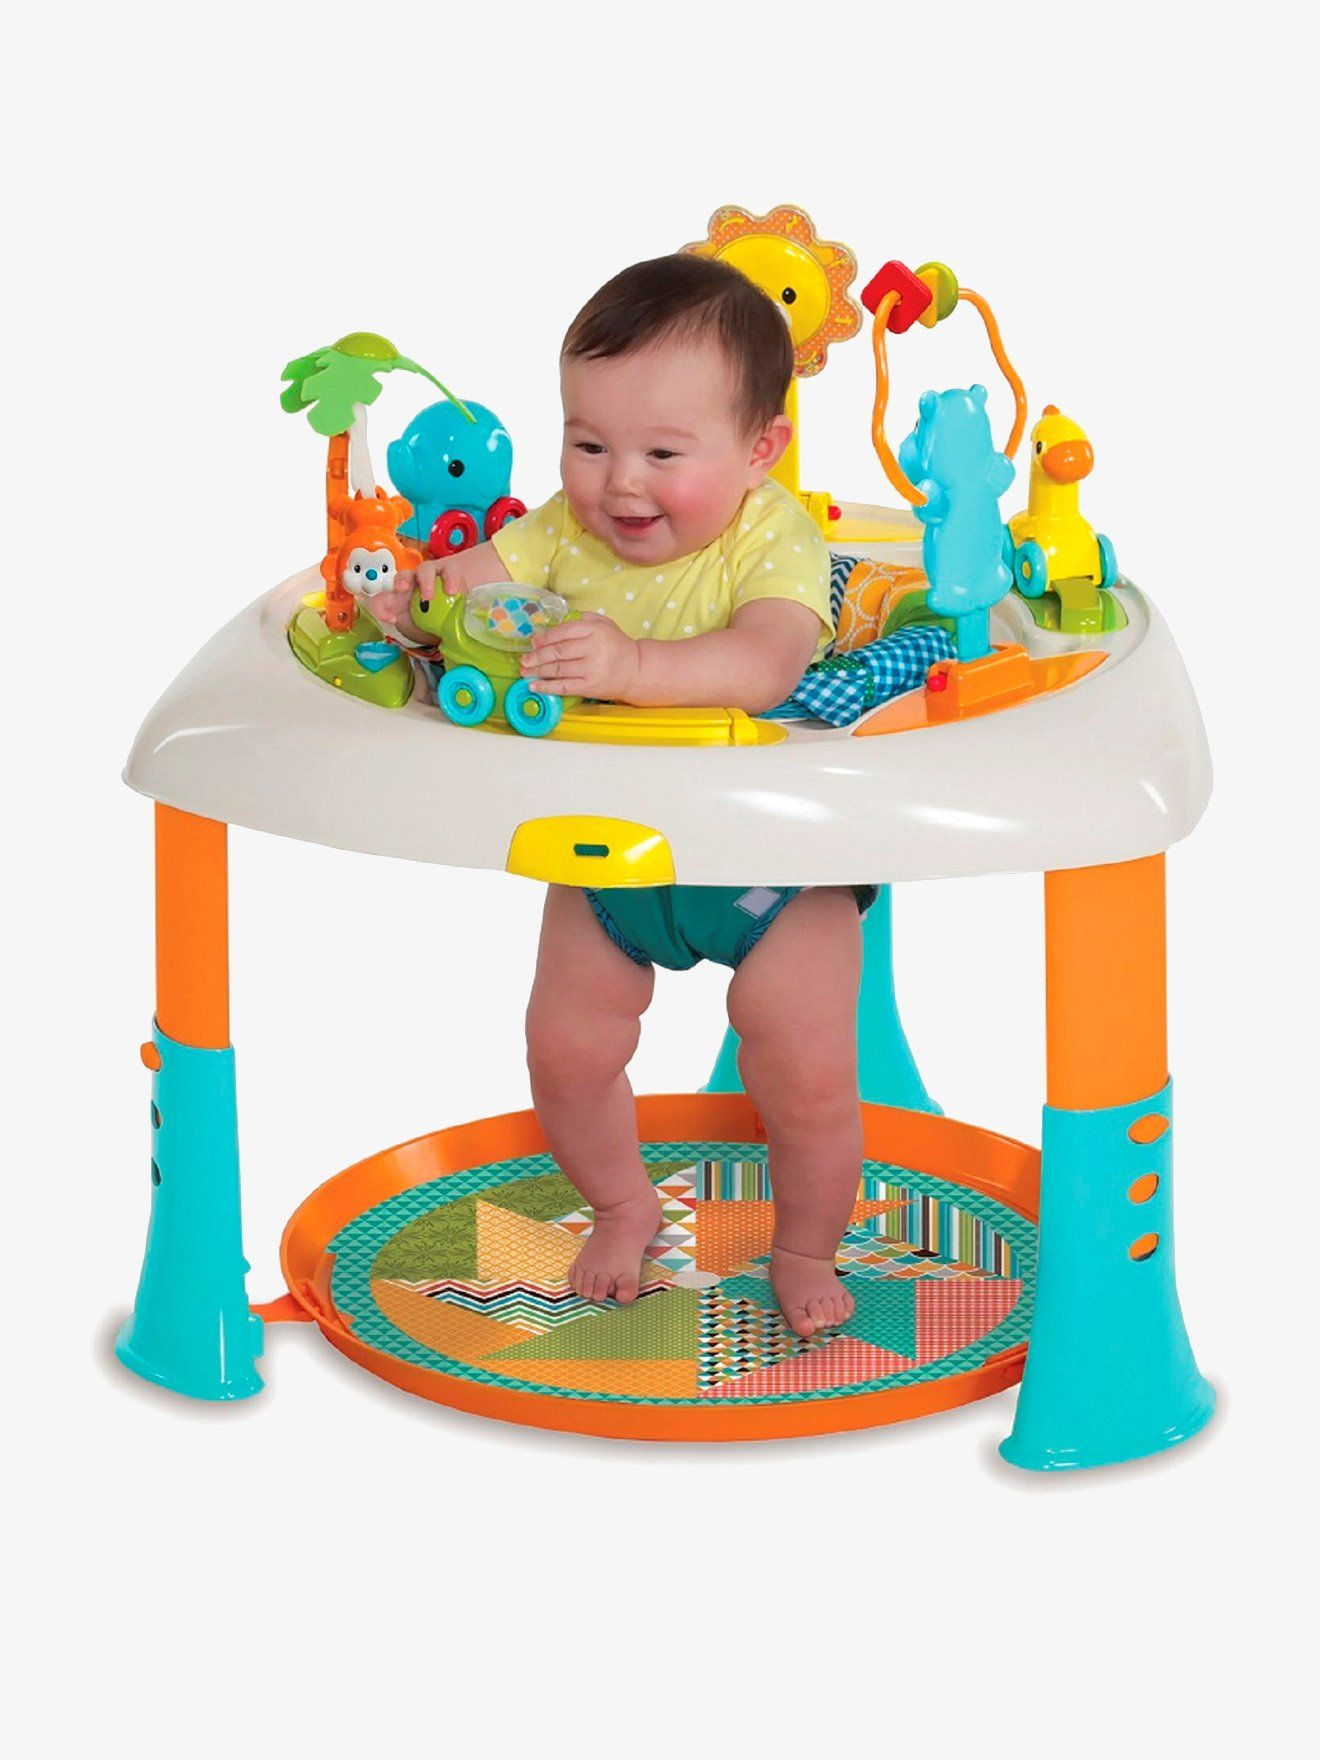 ec7f3eb6f2f Baby walker and then activity table